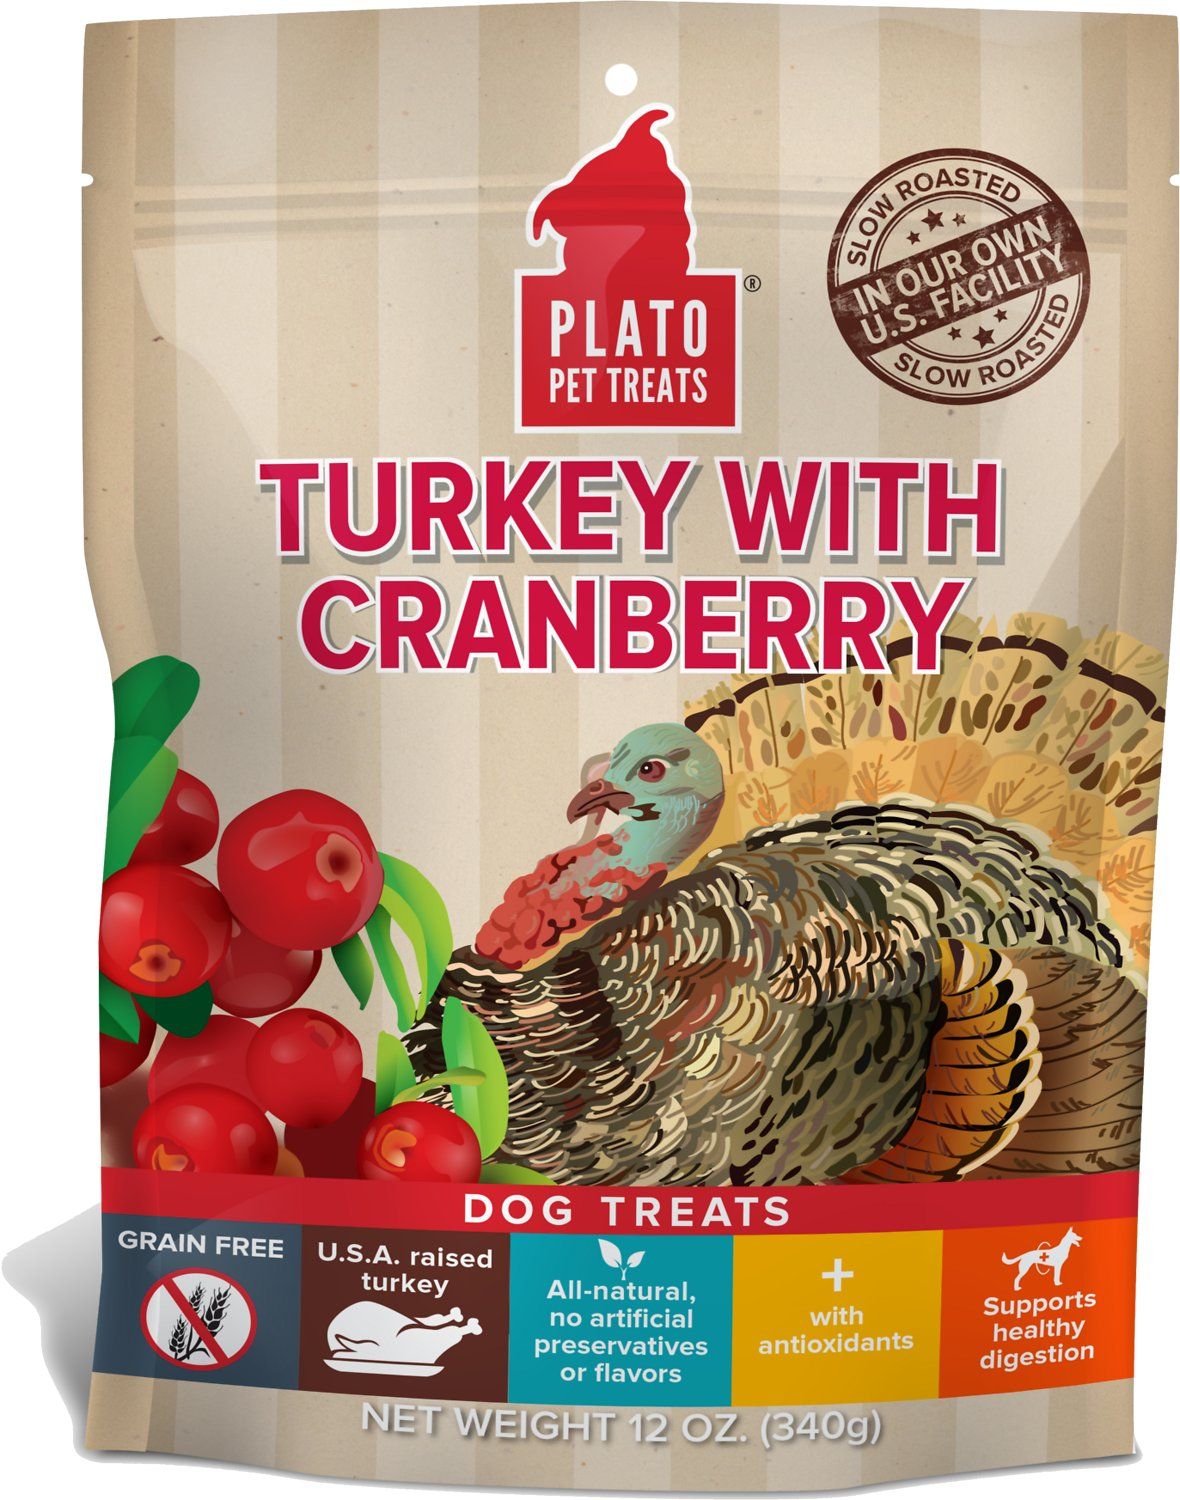 Plato Real Strips Turkey With Cranberry Dog Treats Image